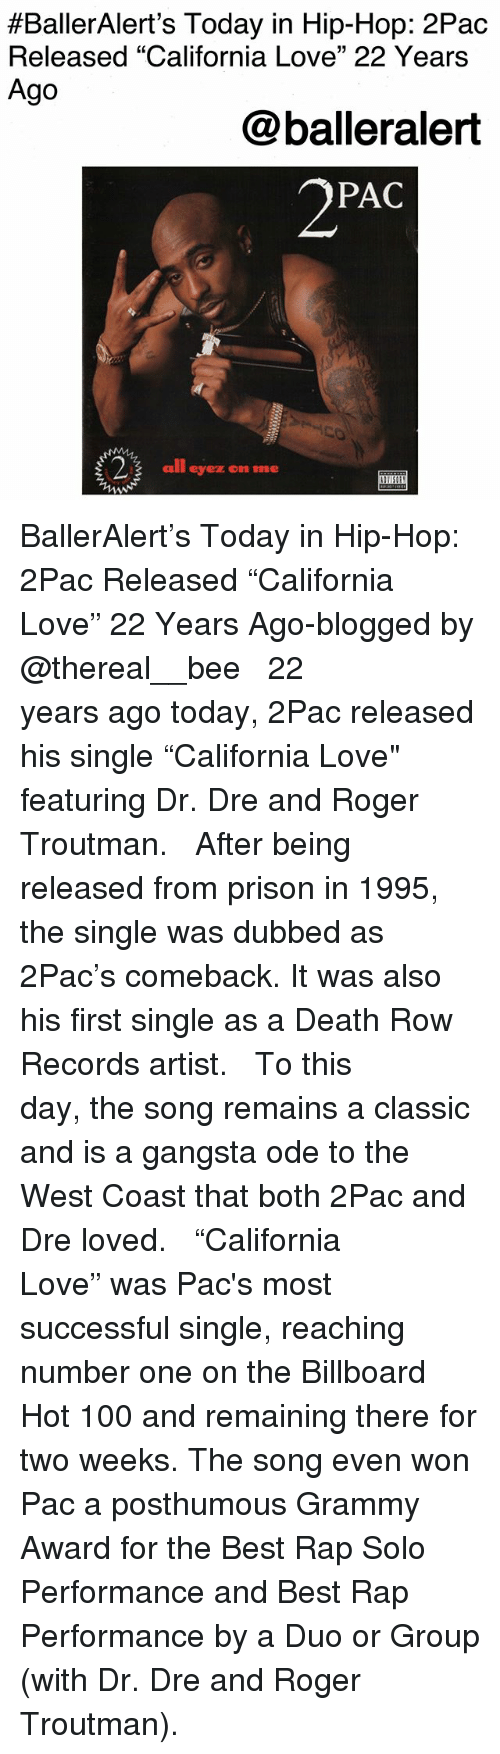 """Anaconda, Billboard, and Dr. Dre:  #BallerAlert's Today in Hip-Hop: 2Pac  Released """"California Love"""" 22 Years  Ago  @balleralert  2PAC  all eyez on me BallerAlert's Today in Hip-Hop: 2Pac Released """"California Love"""" 22 Years Ago-blogged by @thereal__bee ⠀⠀⠀⠀⠀⠀⠀⠀⠀ ⠀⠀ 22 years ago today, 2Pac released his single """"California Love"""" featuring Dr. Dre and Roger Troutman. ⠀⠀⠀⠀⠀⠀⠀⠀⠀ ⠀⠀ After being released from prison in 1995, the single was dubbed as 2Pac's comeback. It was also his first single as a Death Row Records artist. ⠀⠀⠀⠀⠀⠀⠀⠀⠀ ⠀⠀ To this day, the song remains a classic and is a gangsta ode to the West Coast that both 2Pac and Dre loved. ⠀⠀⠀⠀⠀⠀⠀⠀⠀ ⠀⠀ """"California Love"""" was Pac's most successful single, reaching number one on the Billboard Hot 100 and remaining there for two weeks. The song even won Pac a posthumous Grammy Award for the Best Rap Solo Performance and Best Rap Performance by a Duo or Group (with Dr. Dre and Roger Troutman)."""